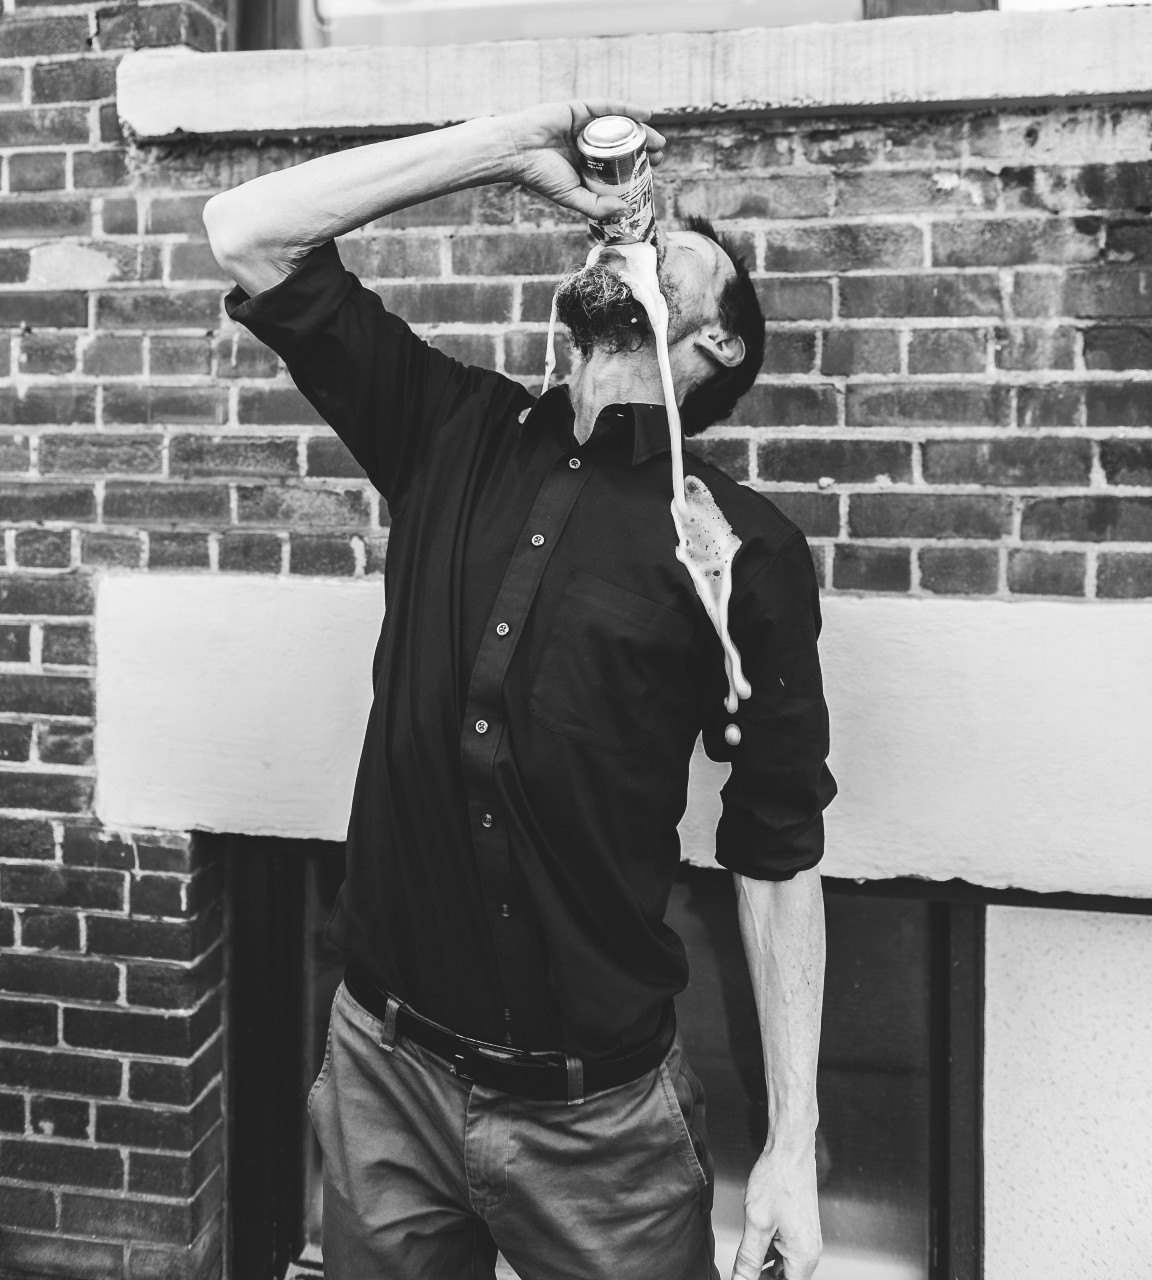 A man tiltin his head back has his drink spilling down his face and shirt.